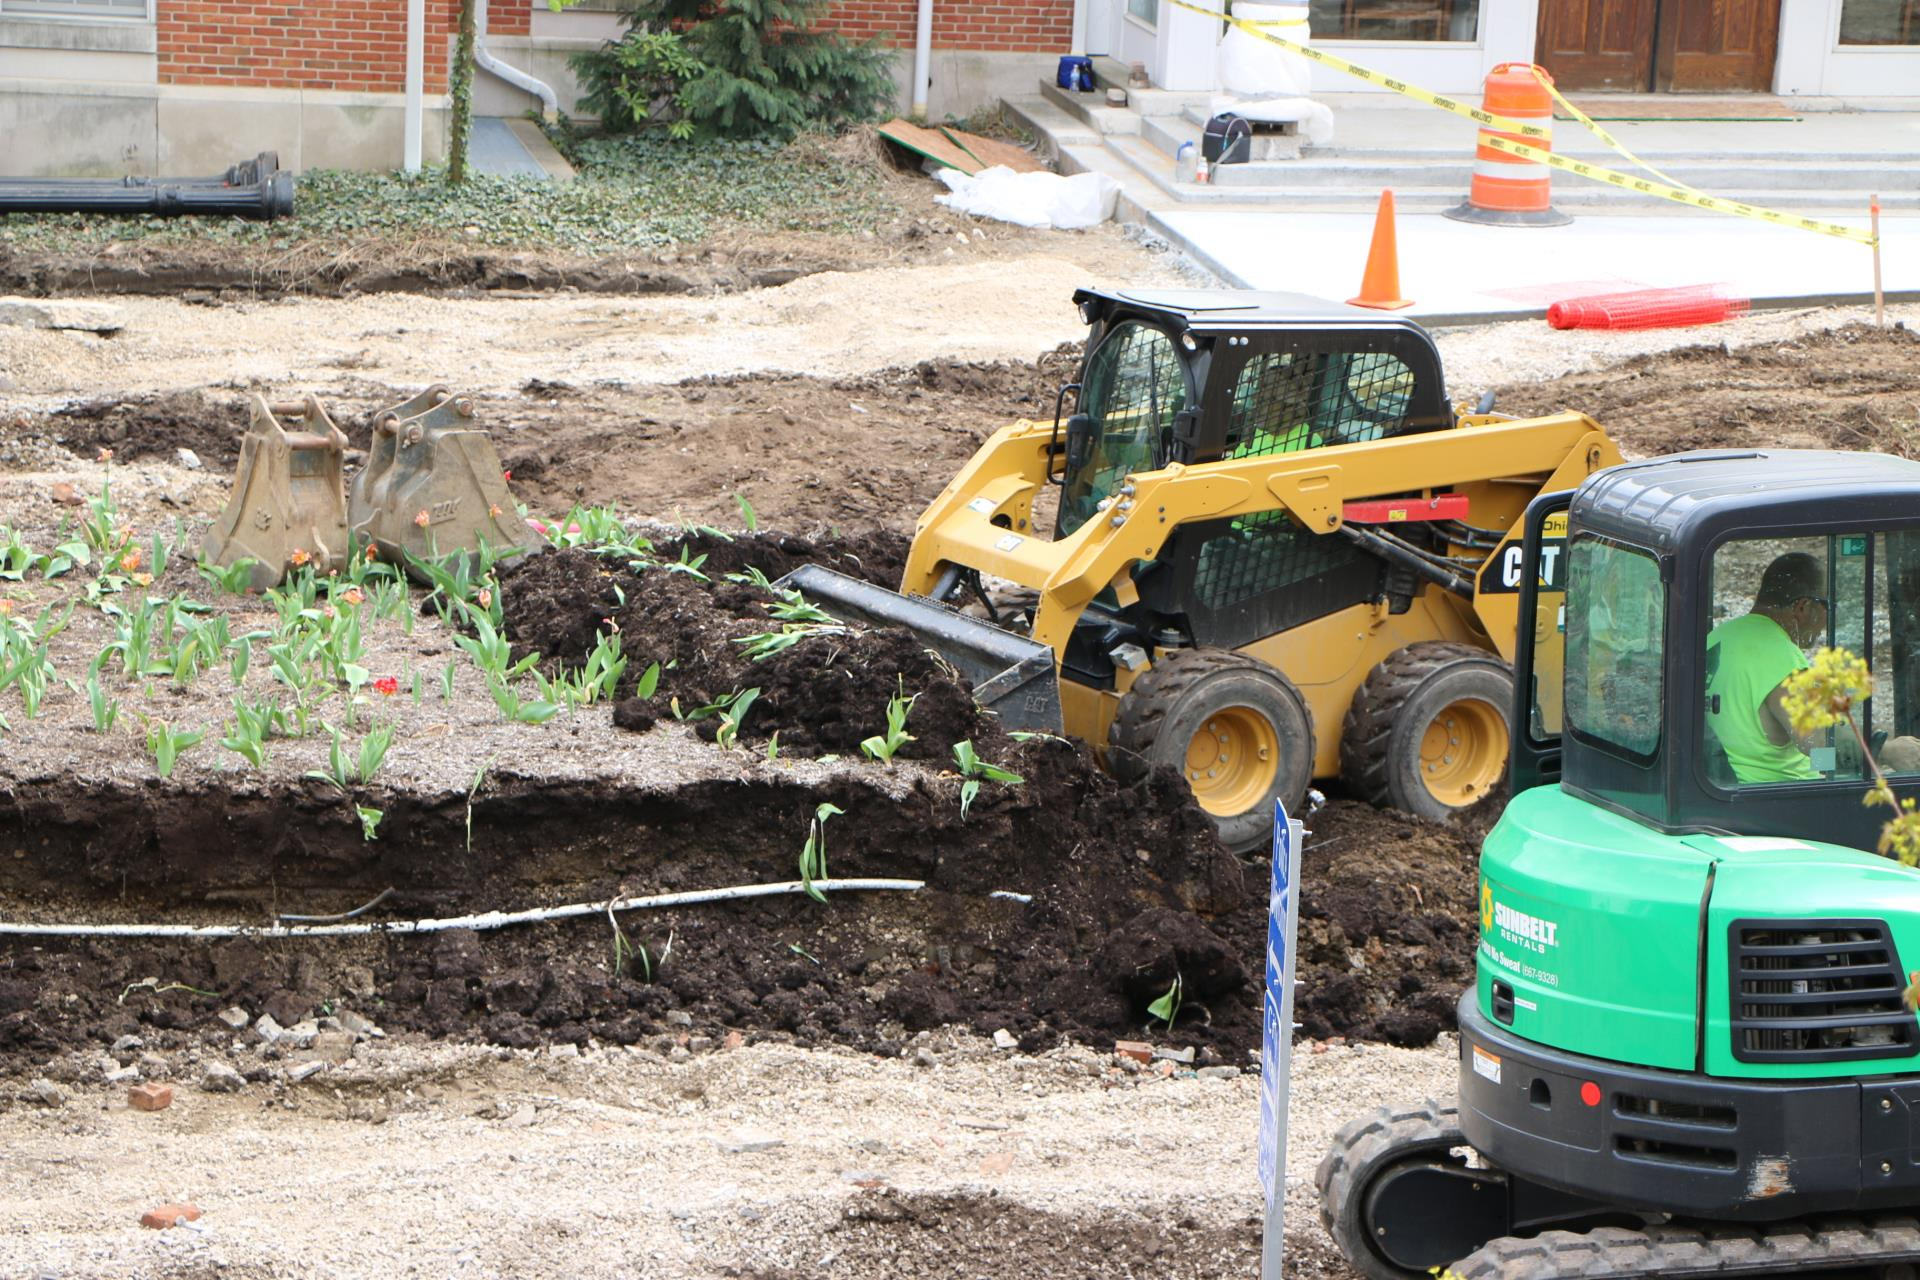 Crews demolish the large, brick planter.